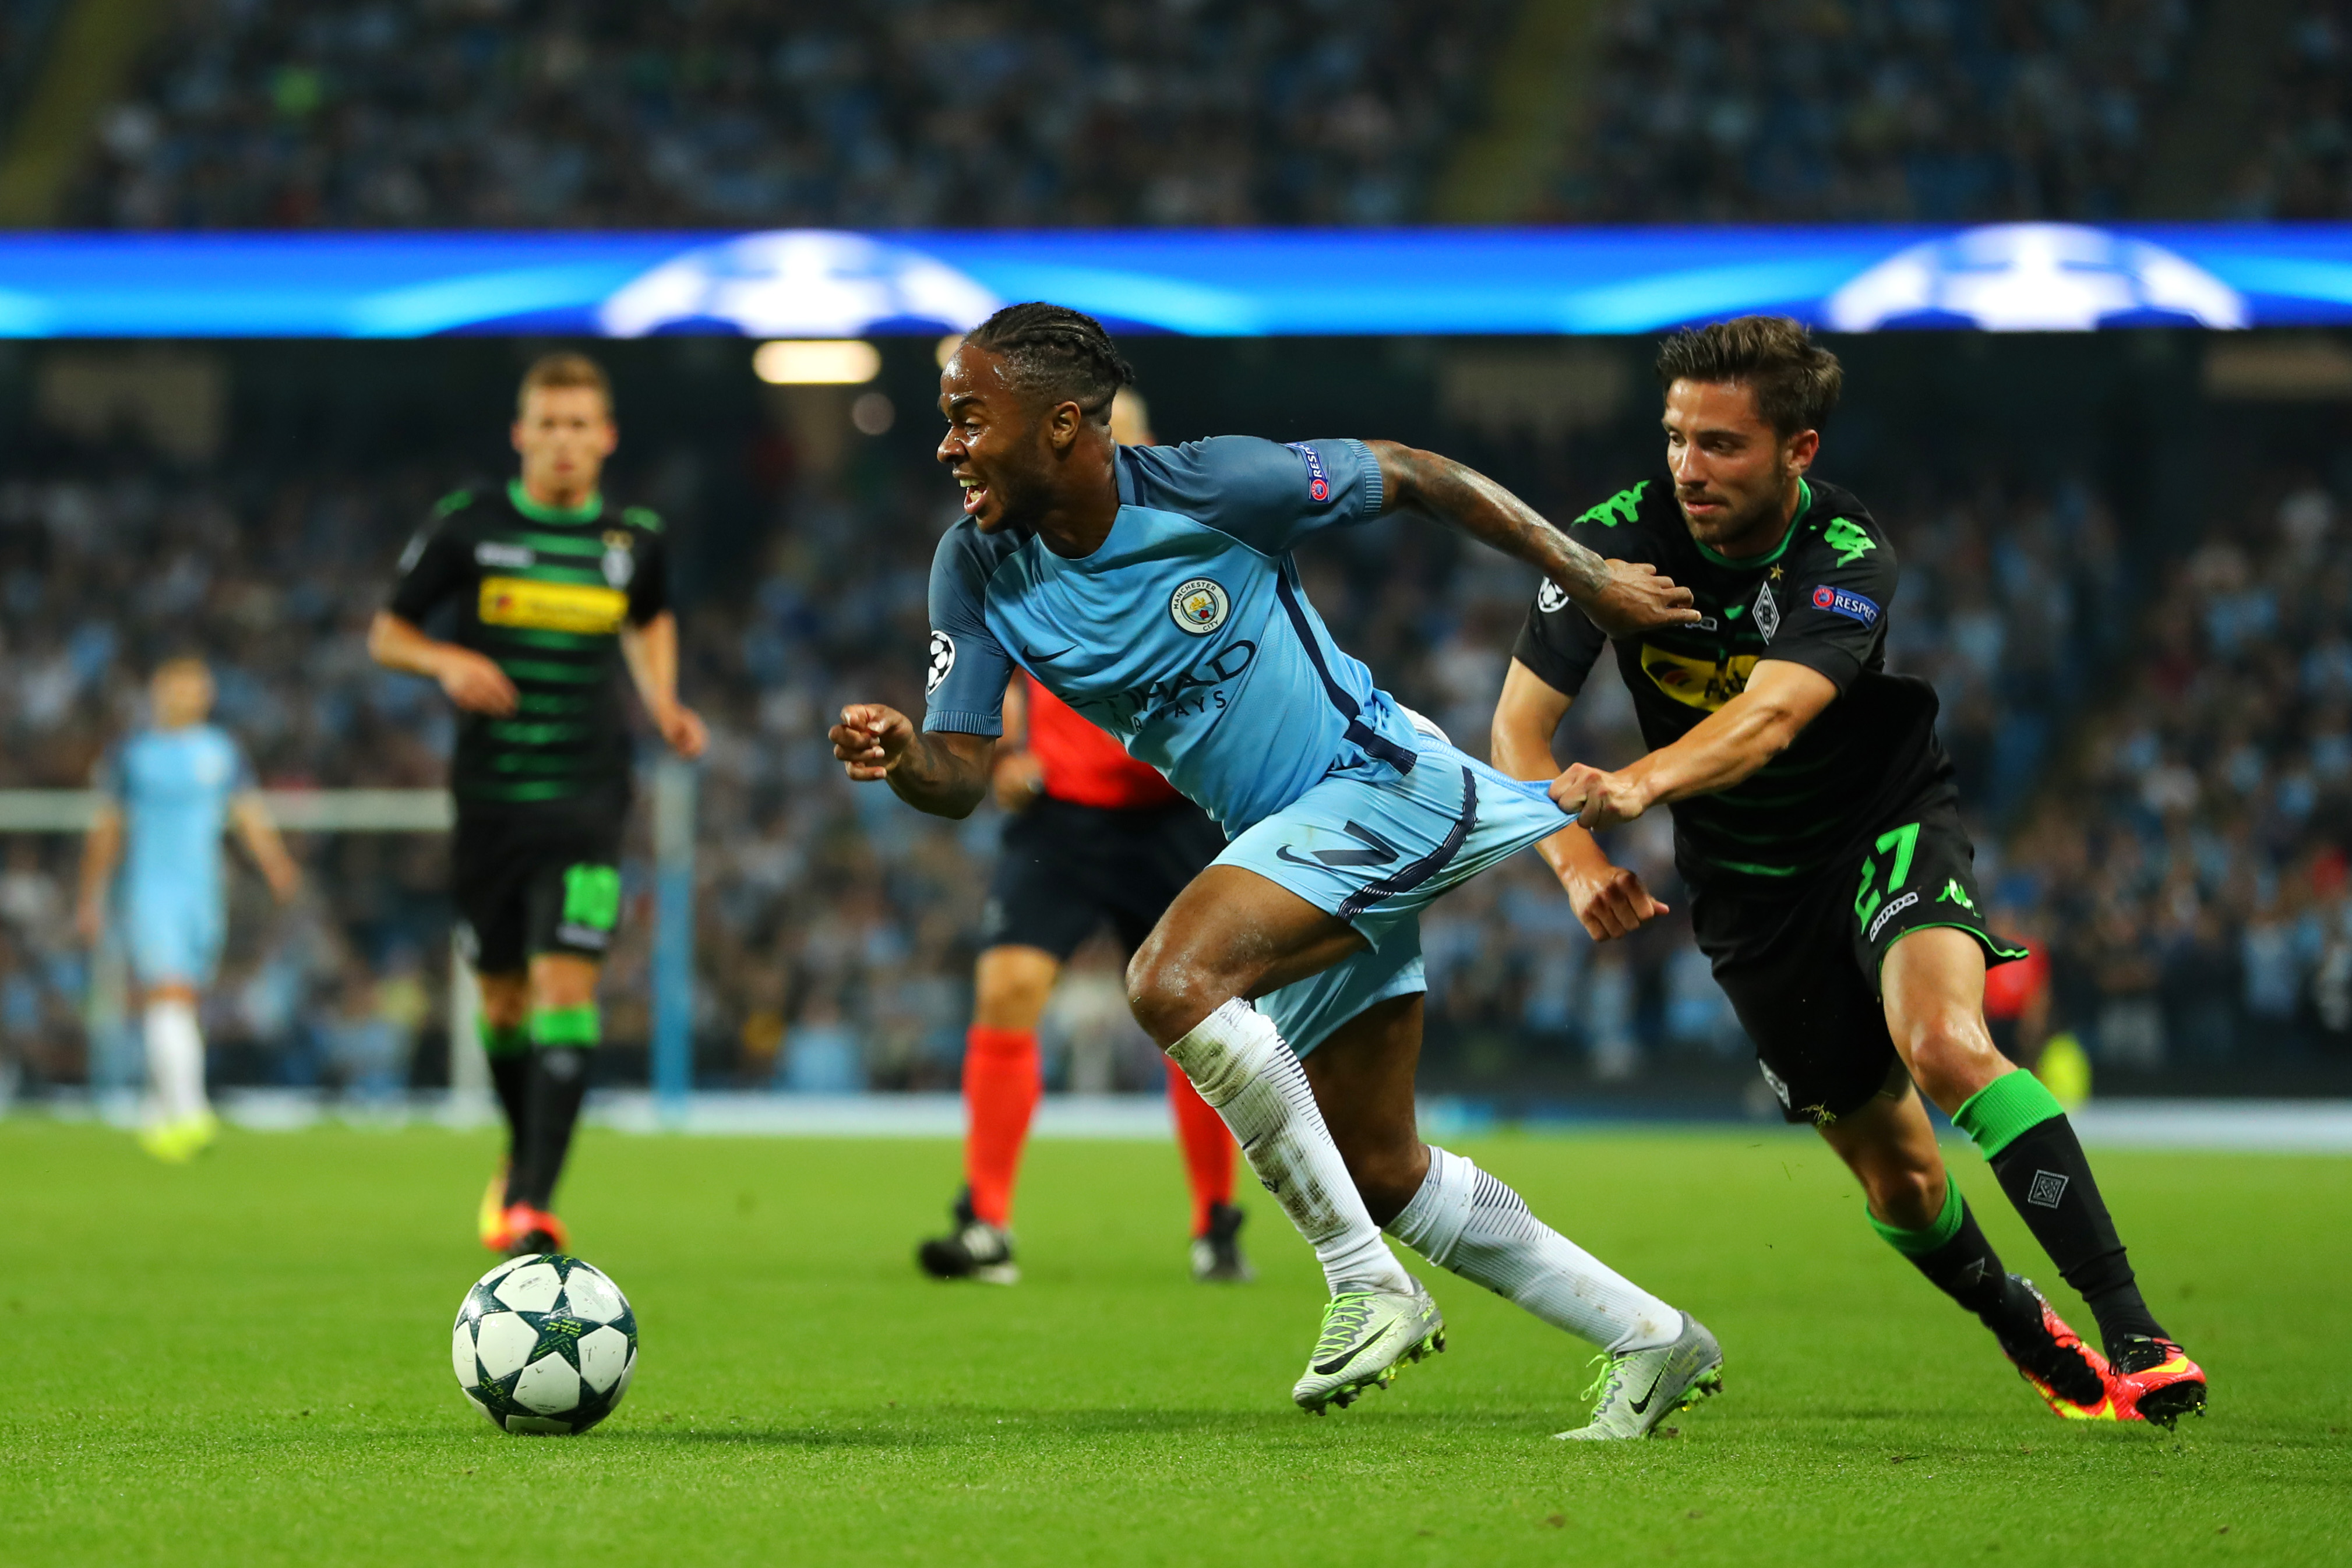 MANCHESTER, ENGLAND - SEPTEMBER 14: Raheem Sterling of Manchester City is pulled back by Julian Korb of Borussia Moenchengladbach during the UEFA Champions League match between Manchester City FC and VfL Borussia Moenchengladbach at Etihad Stadium on September 14, 2016 in Manchester, England.  (Photo by Richard Heathcote/Getty Images)